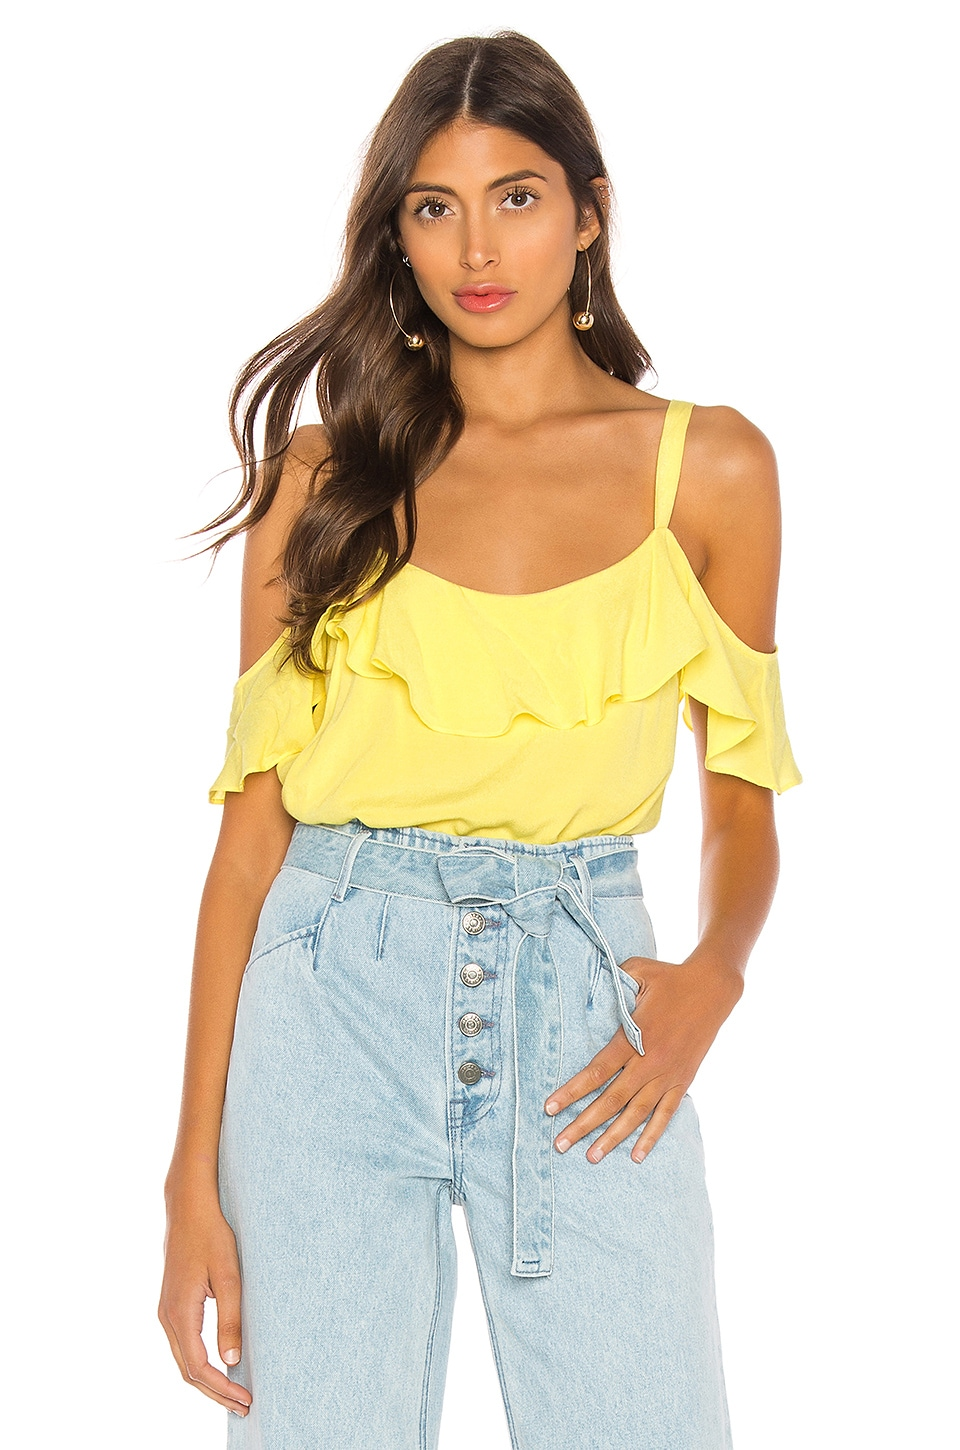 L'Academie The Isla Blouse in Pale Yellow